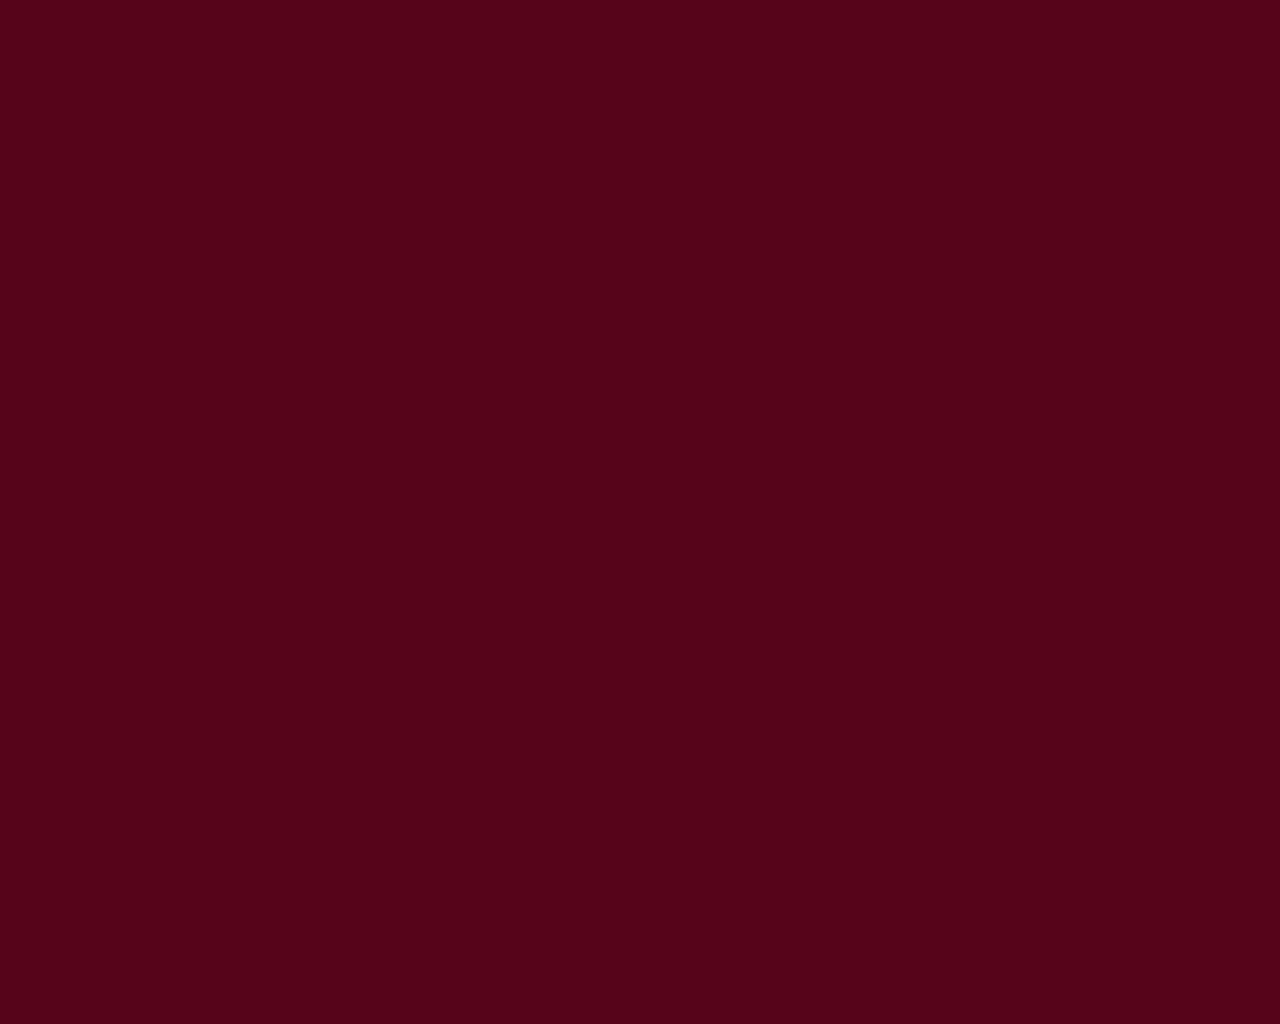 Solid dark red background the - What colors go with dark red ...